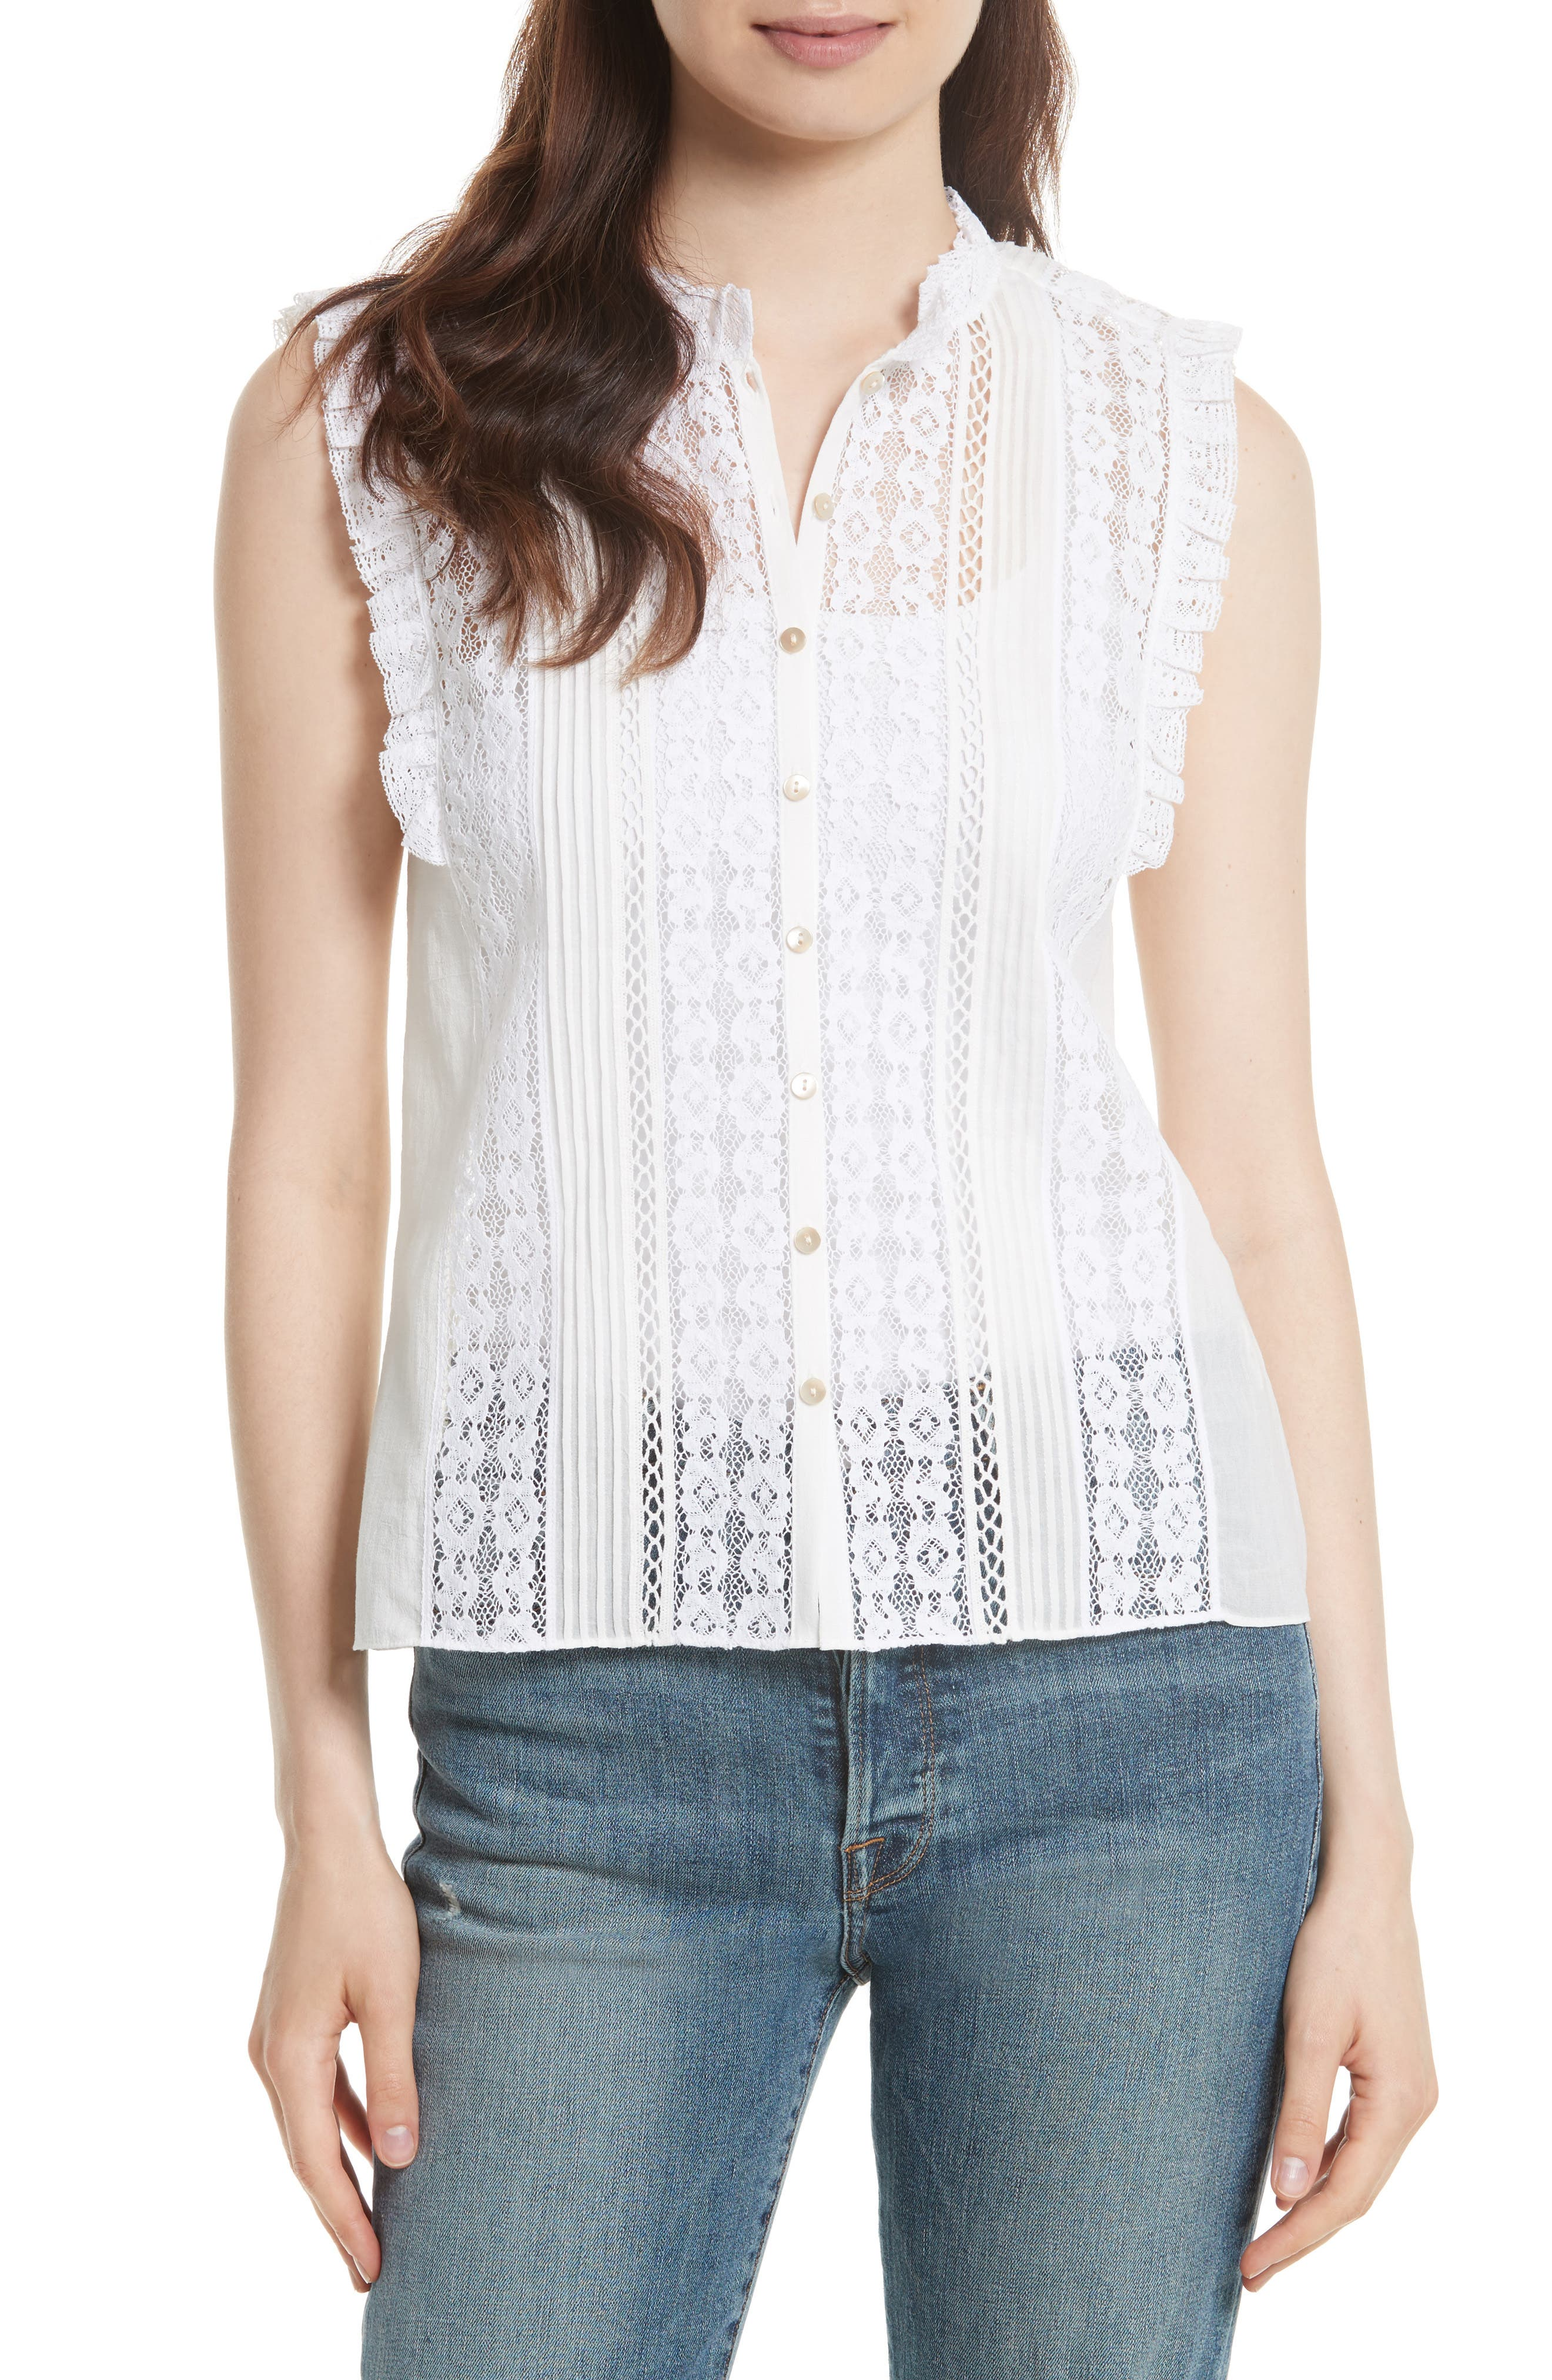 Main Image - Rebecca Taylor Voile & Lace Top